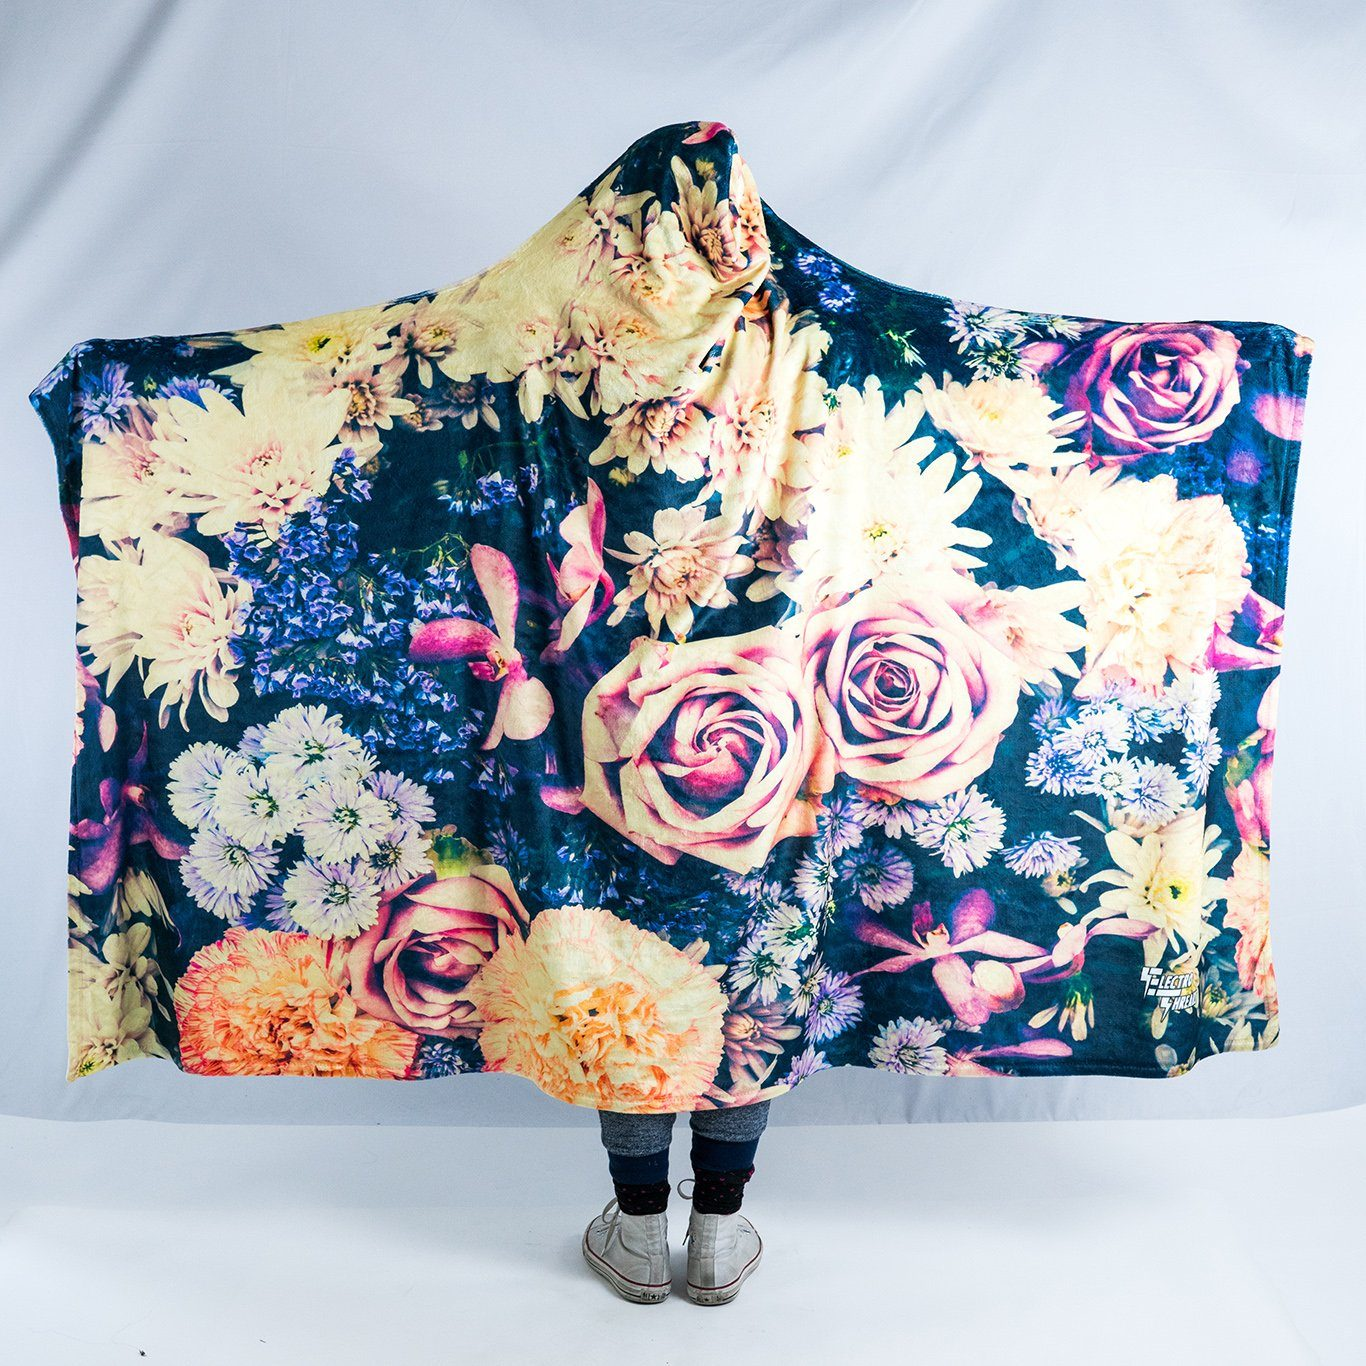 Vintage Flowers Hooded Blanket Hooded Blanket Electro Threads